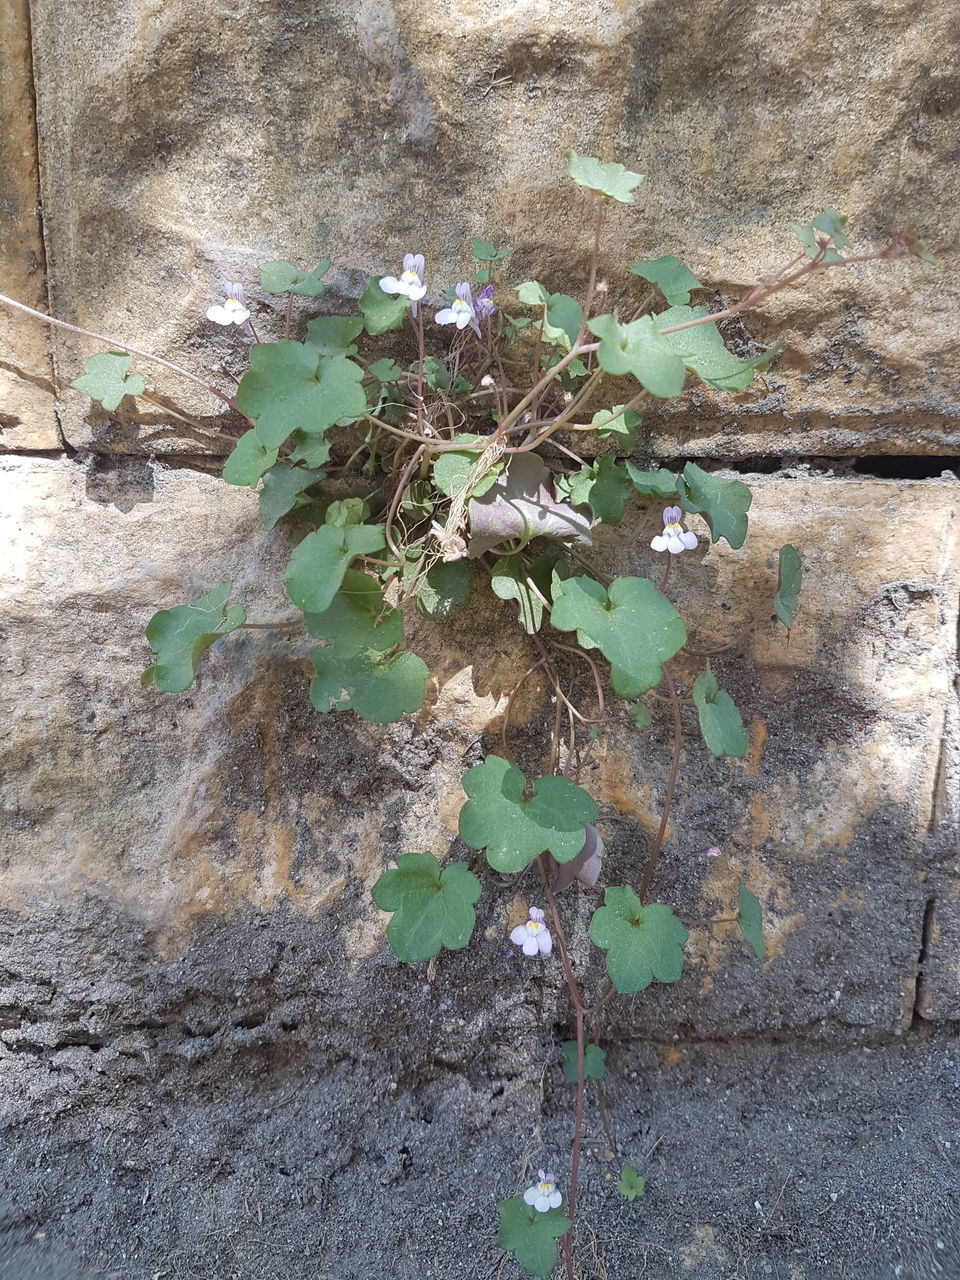 plant part, leaf, plant, growth, day, nature, no people, built structure, close-up, beauty in nature, green color, architecture, wall - building feature, outdoors, wall, ivy, creeper plant, tree, high angle view, building exterior